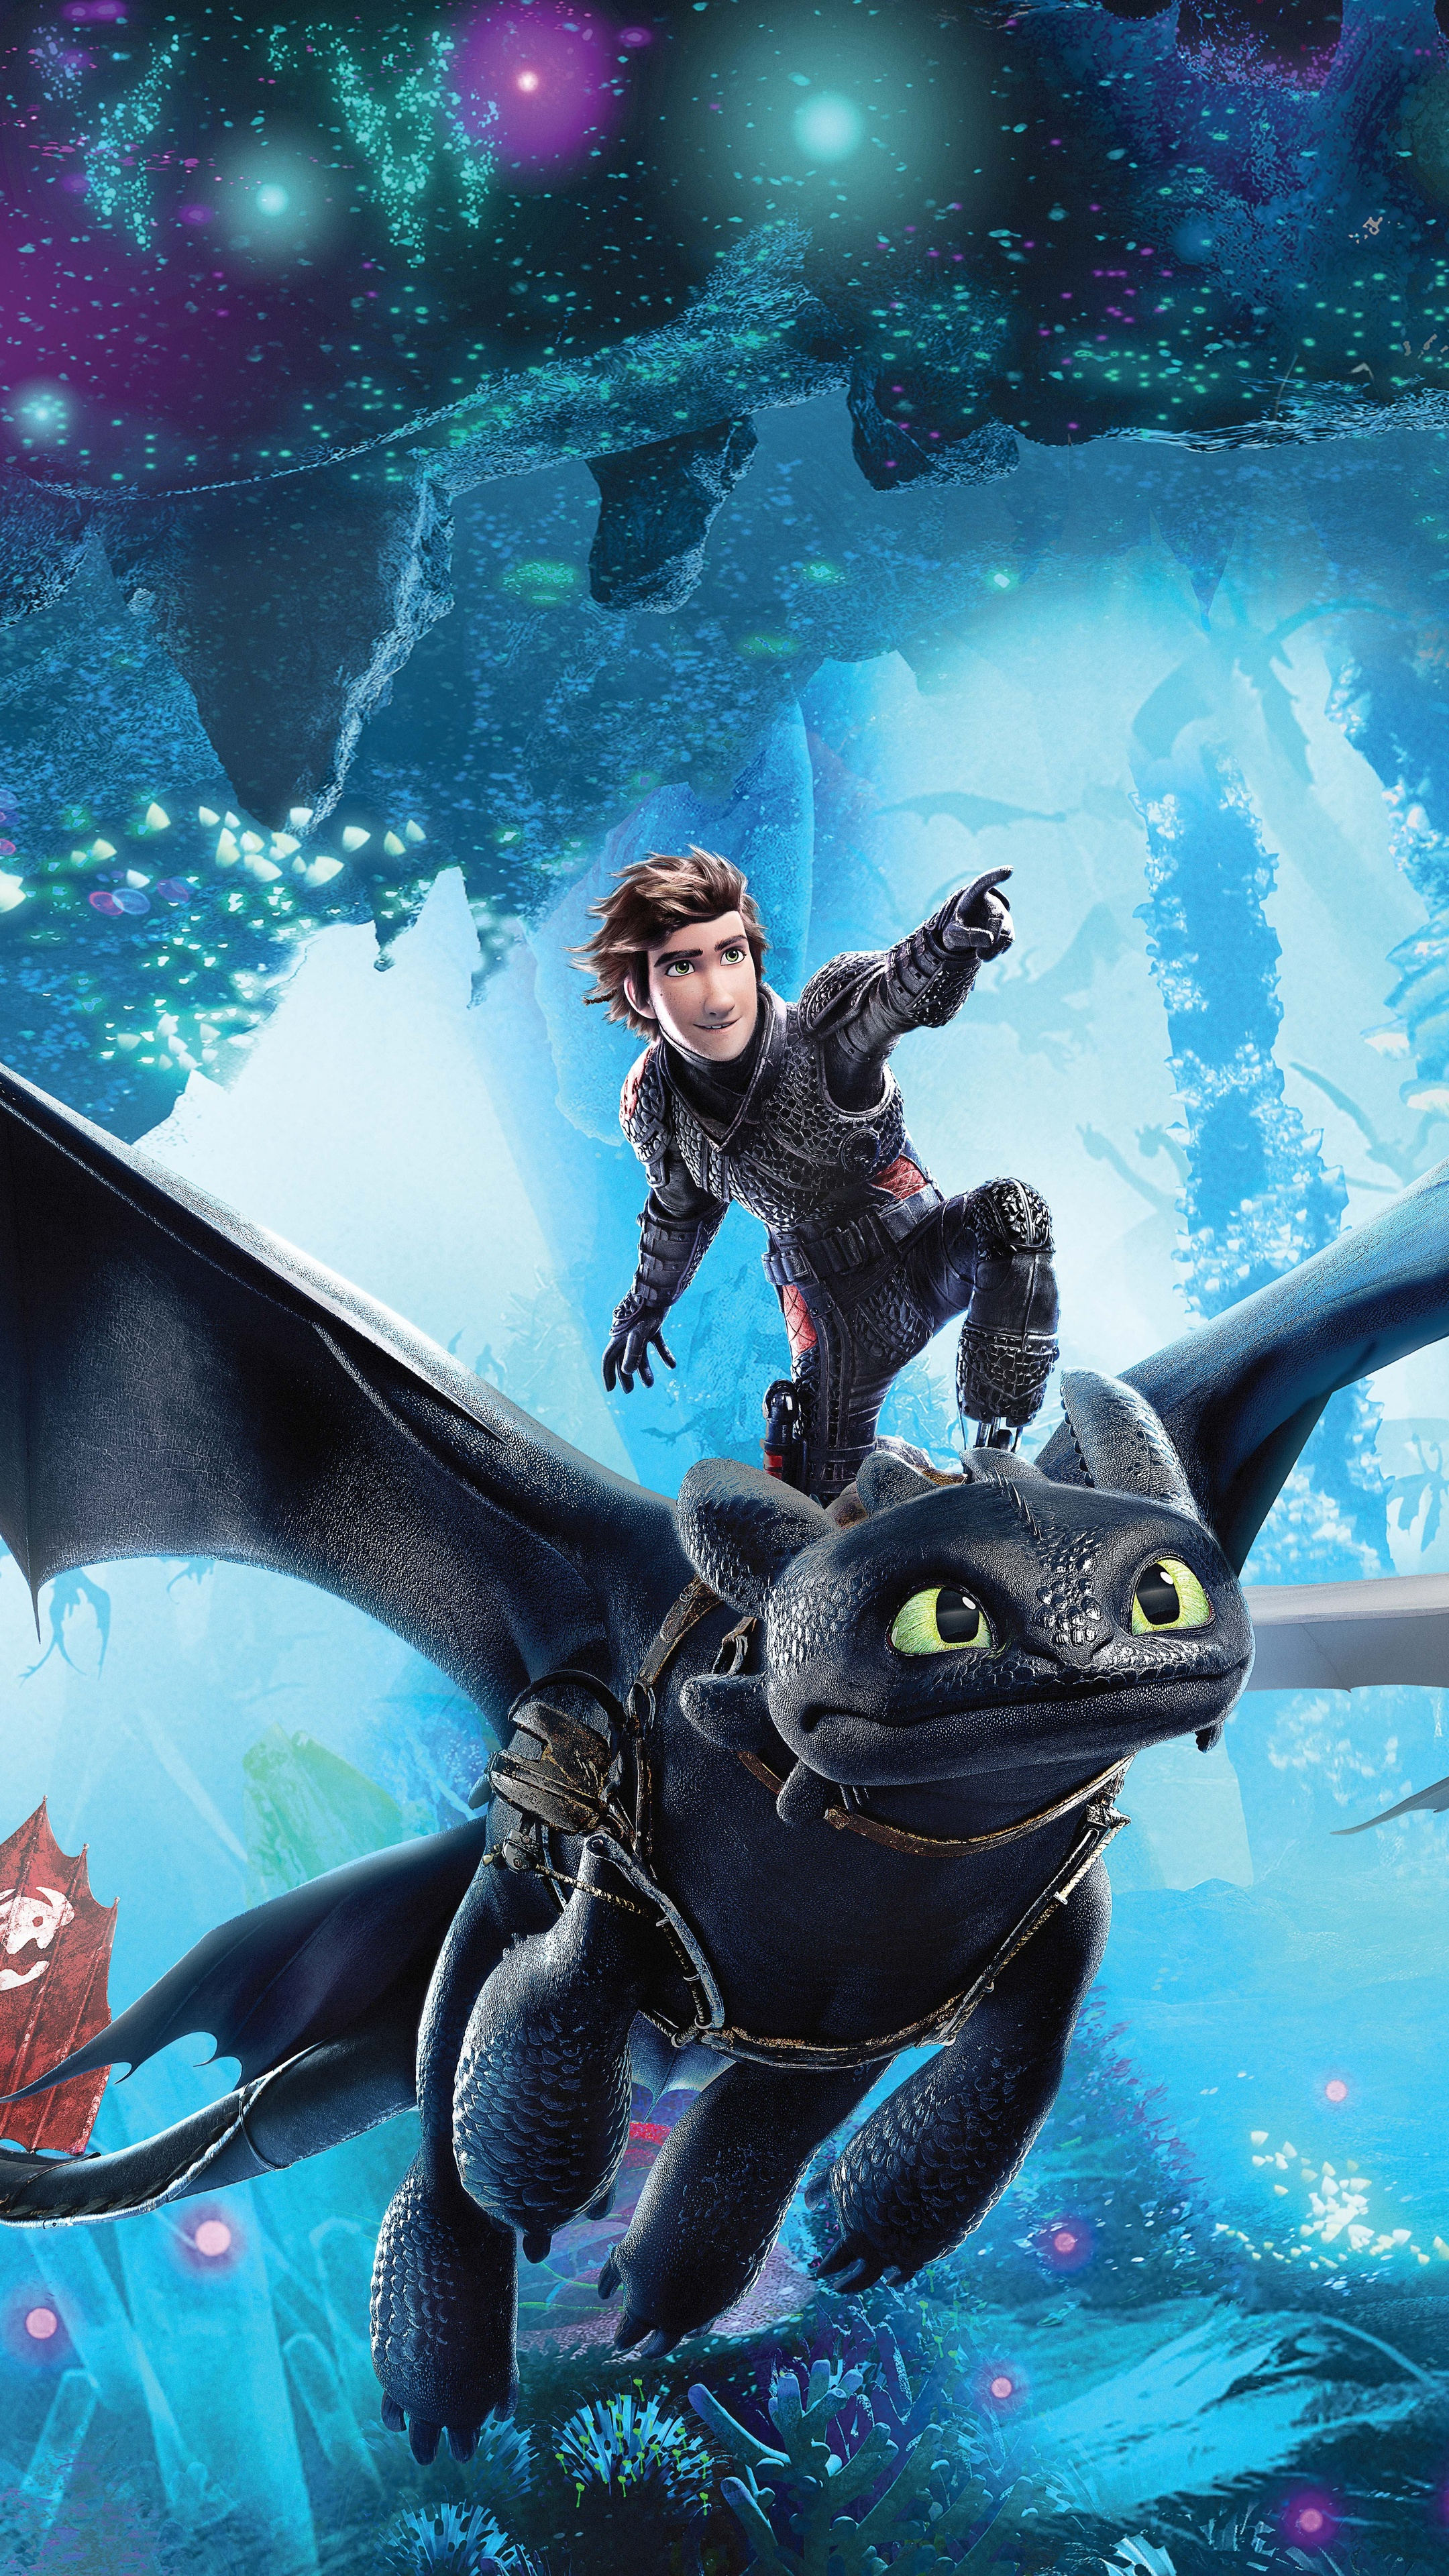 how-to-train-your-dragon-the-hidden-world-12k-poster-bm.jpg